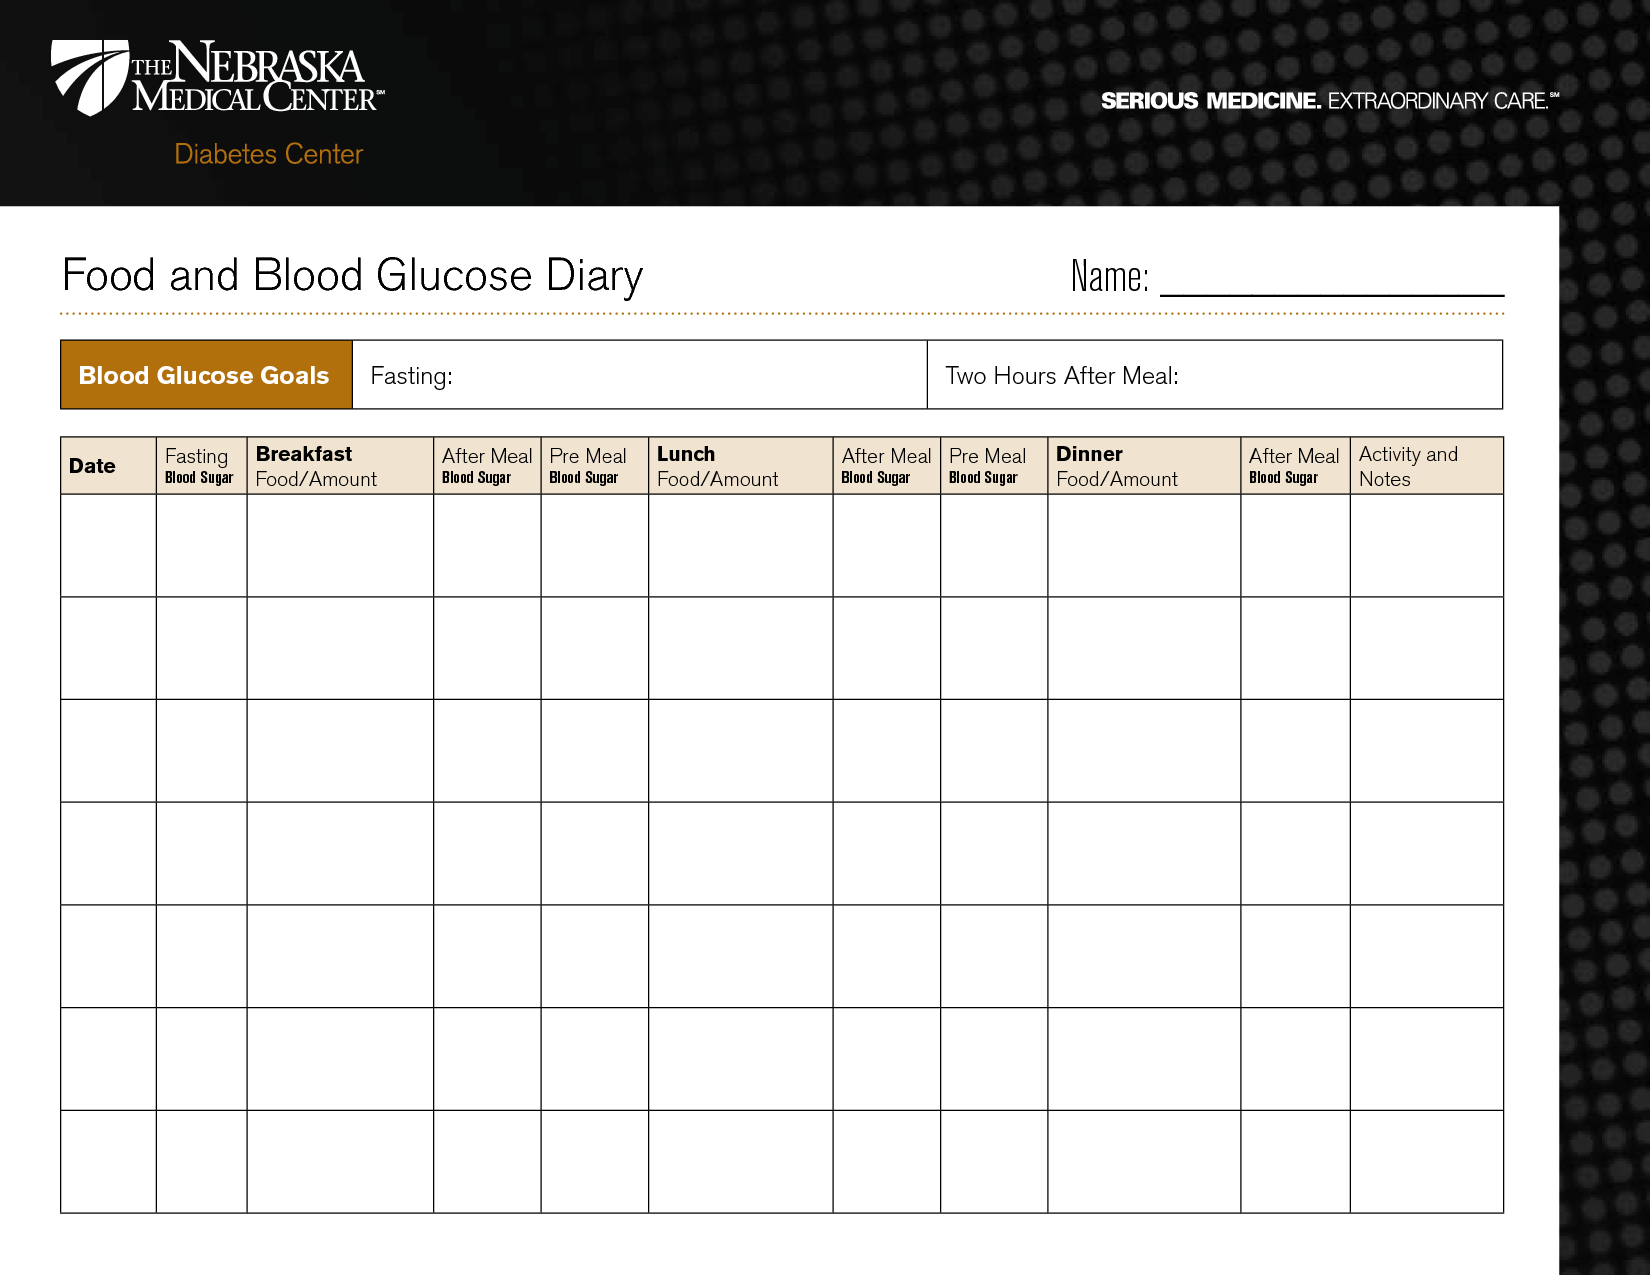 image relating to Blood Glucose and Food Log Printable identified as diabetic food stuff diary template printable Foods and Blood